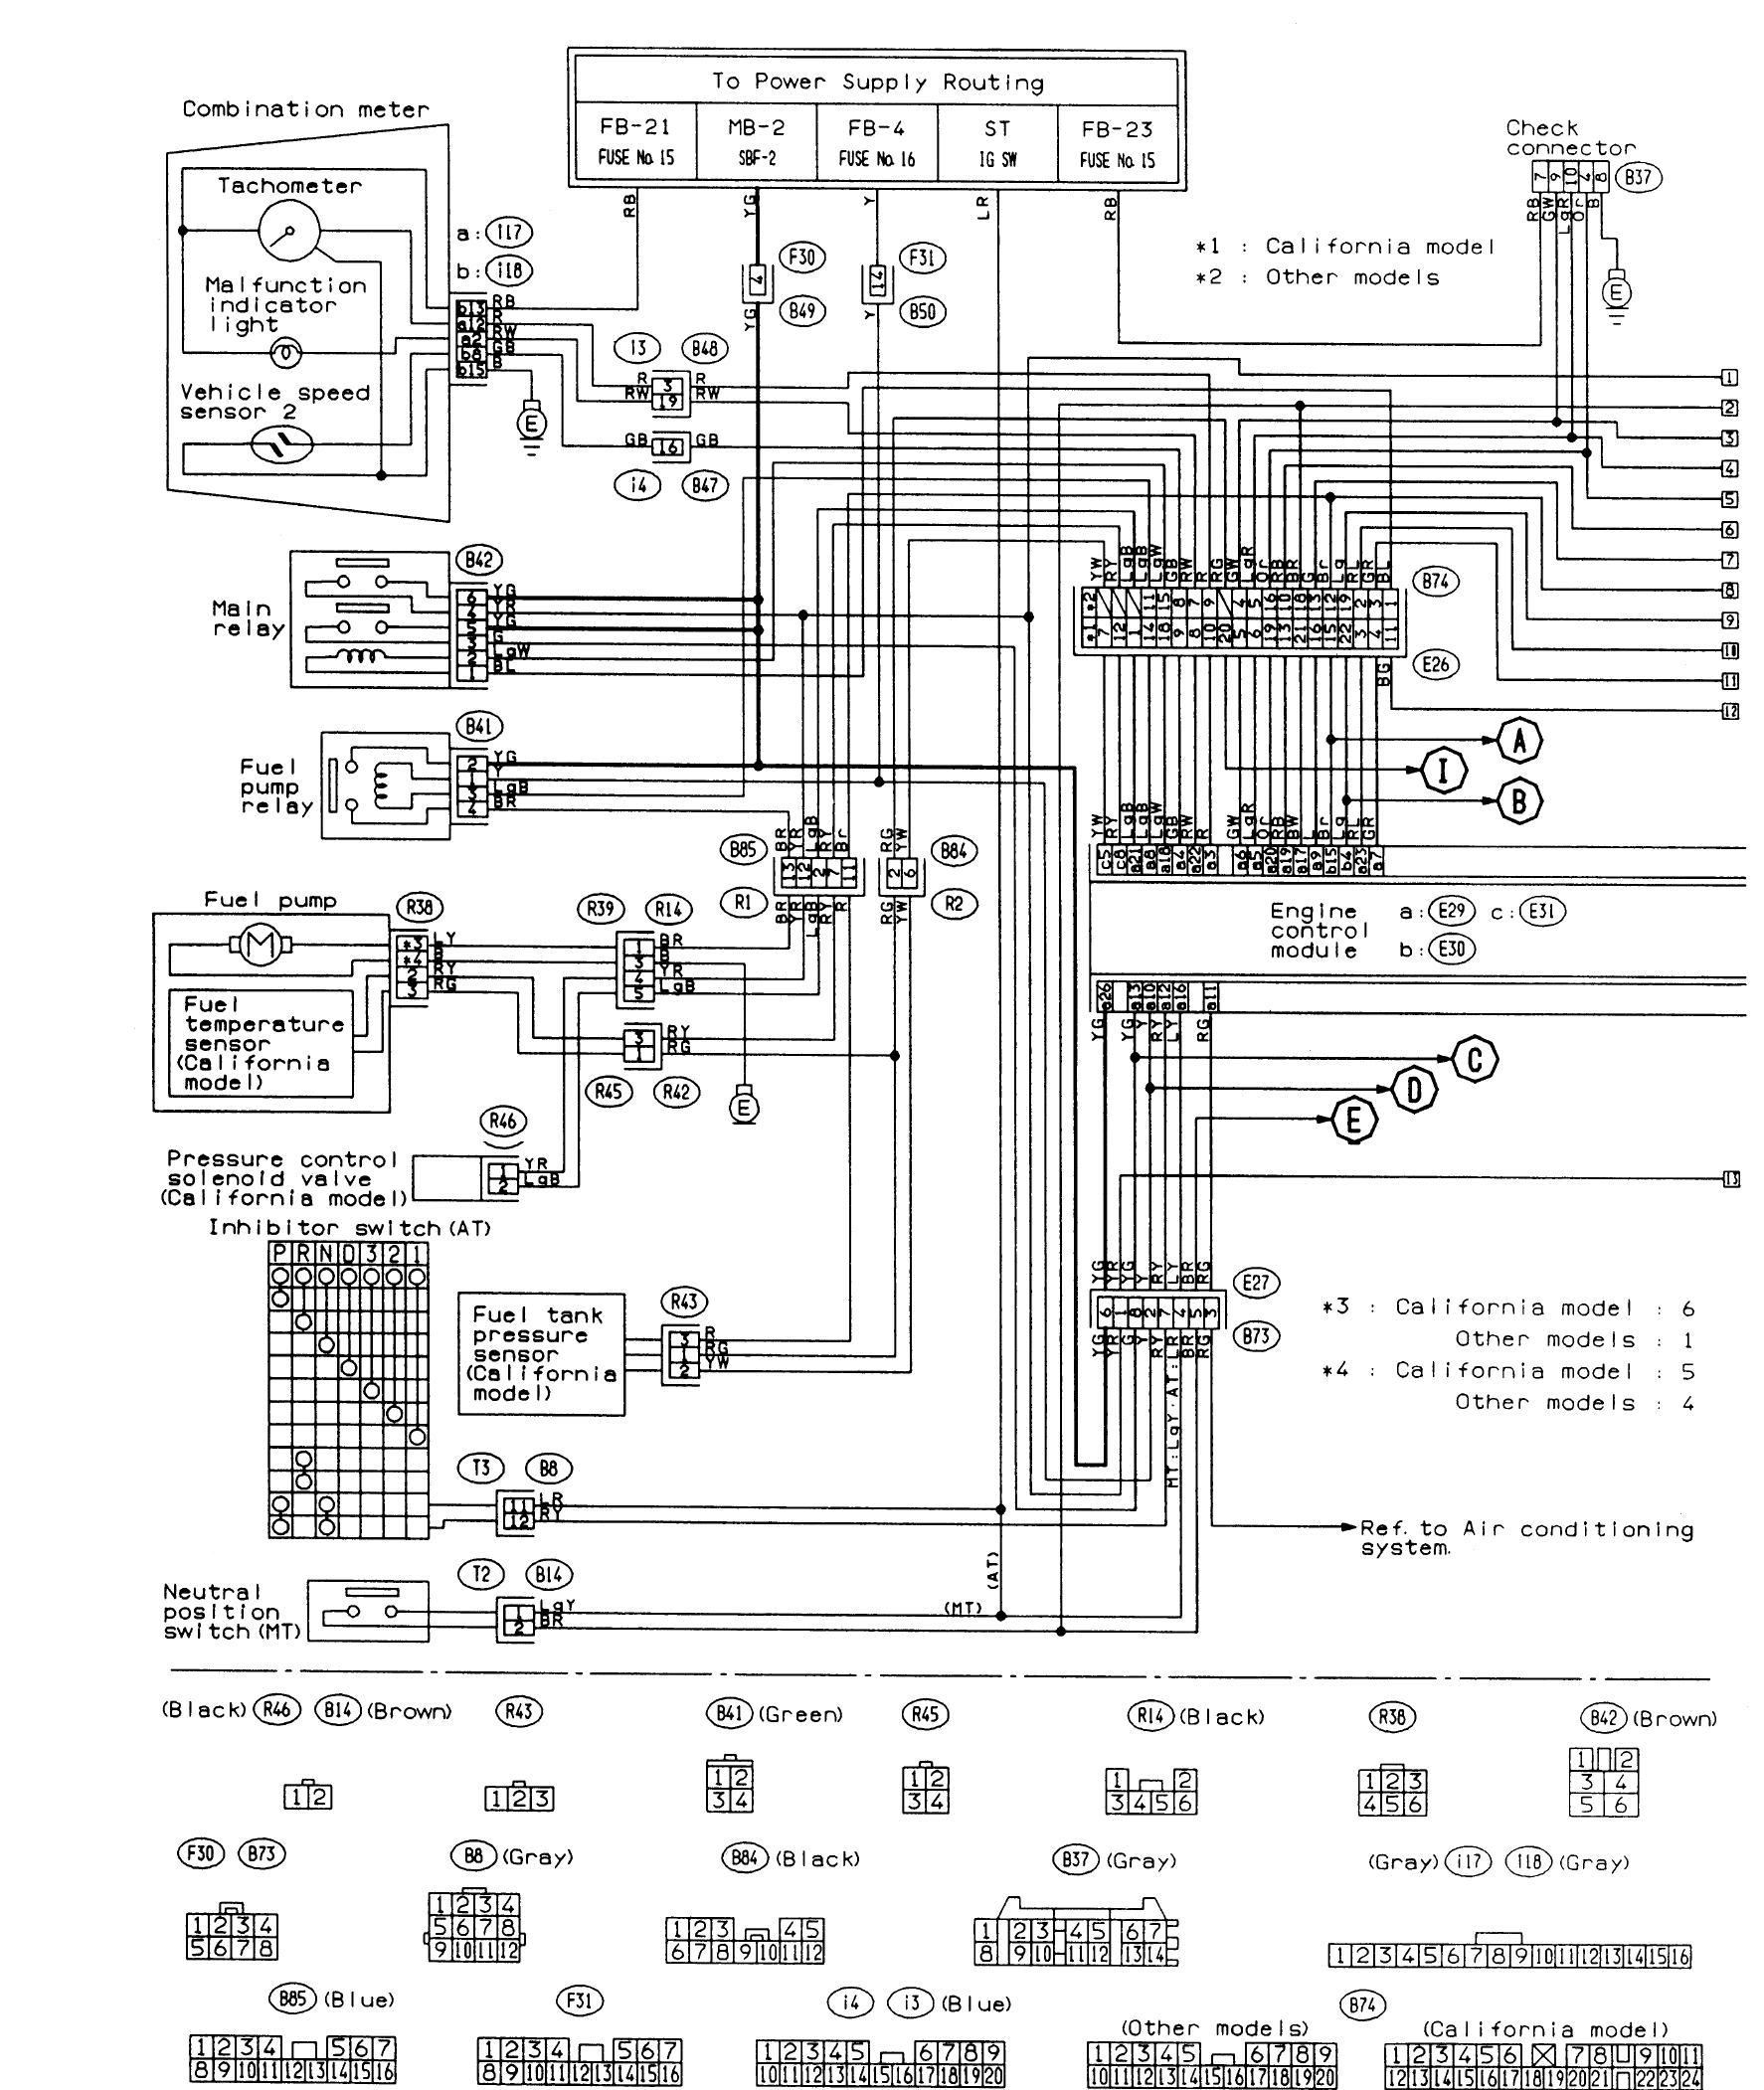 subaru ecu wiring diagram FUSlrCX subaru wiring diagrams 1992 subaru legacy heater wiring schematic  at readyjetset.co